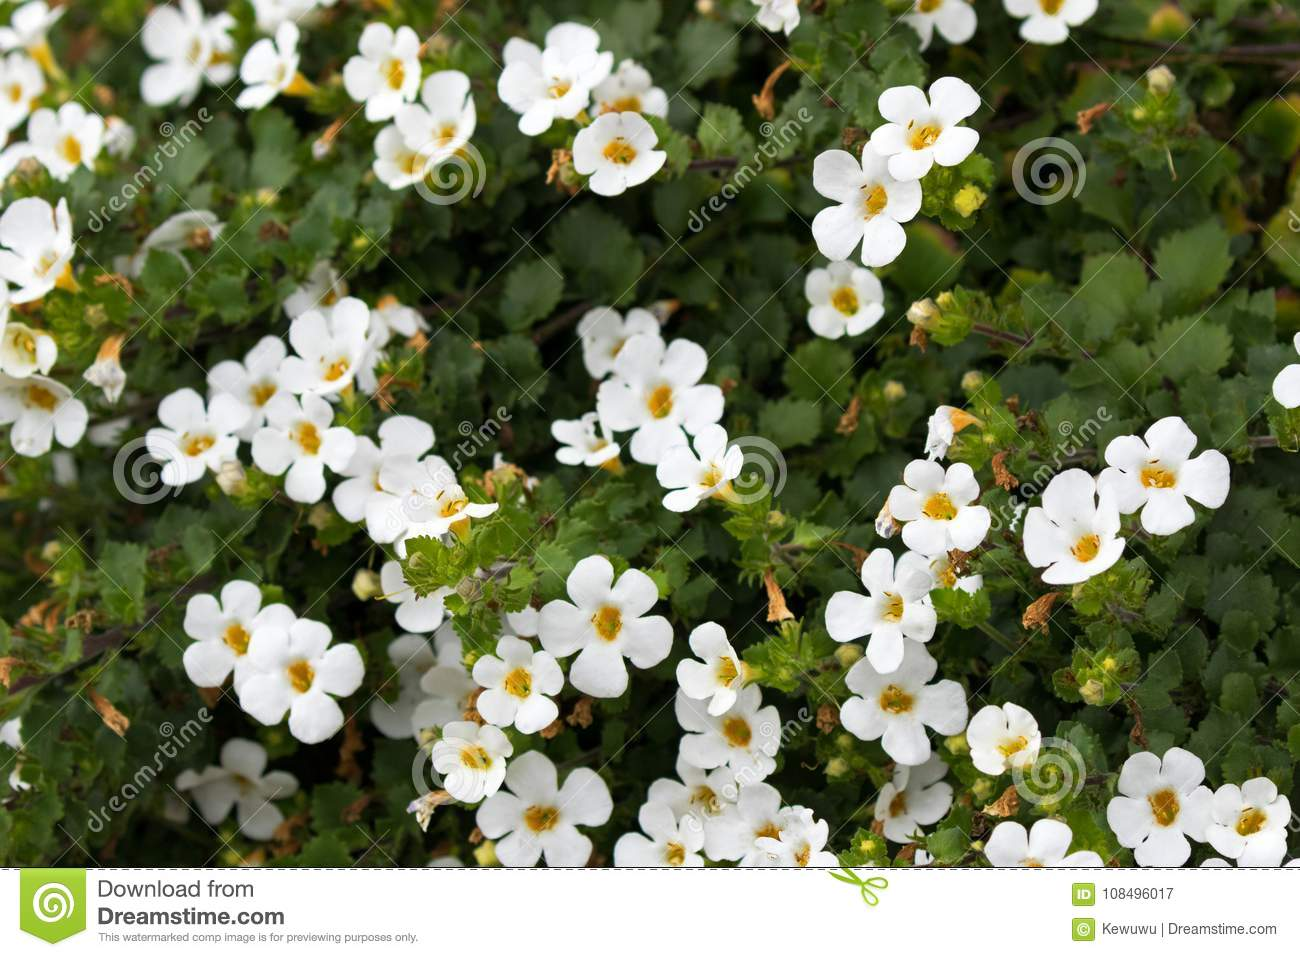 Soft focus of white Ornamental Bacopa flower with yellow pollen